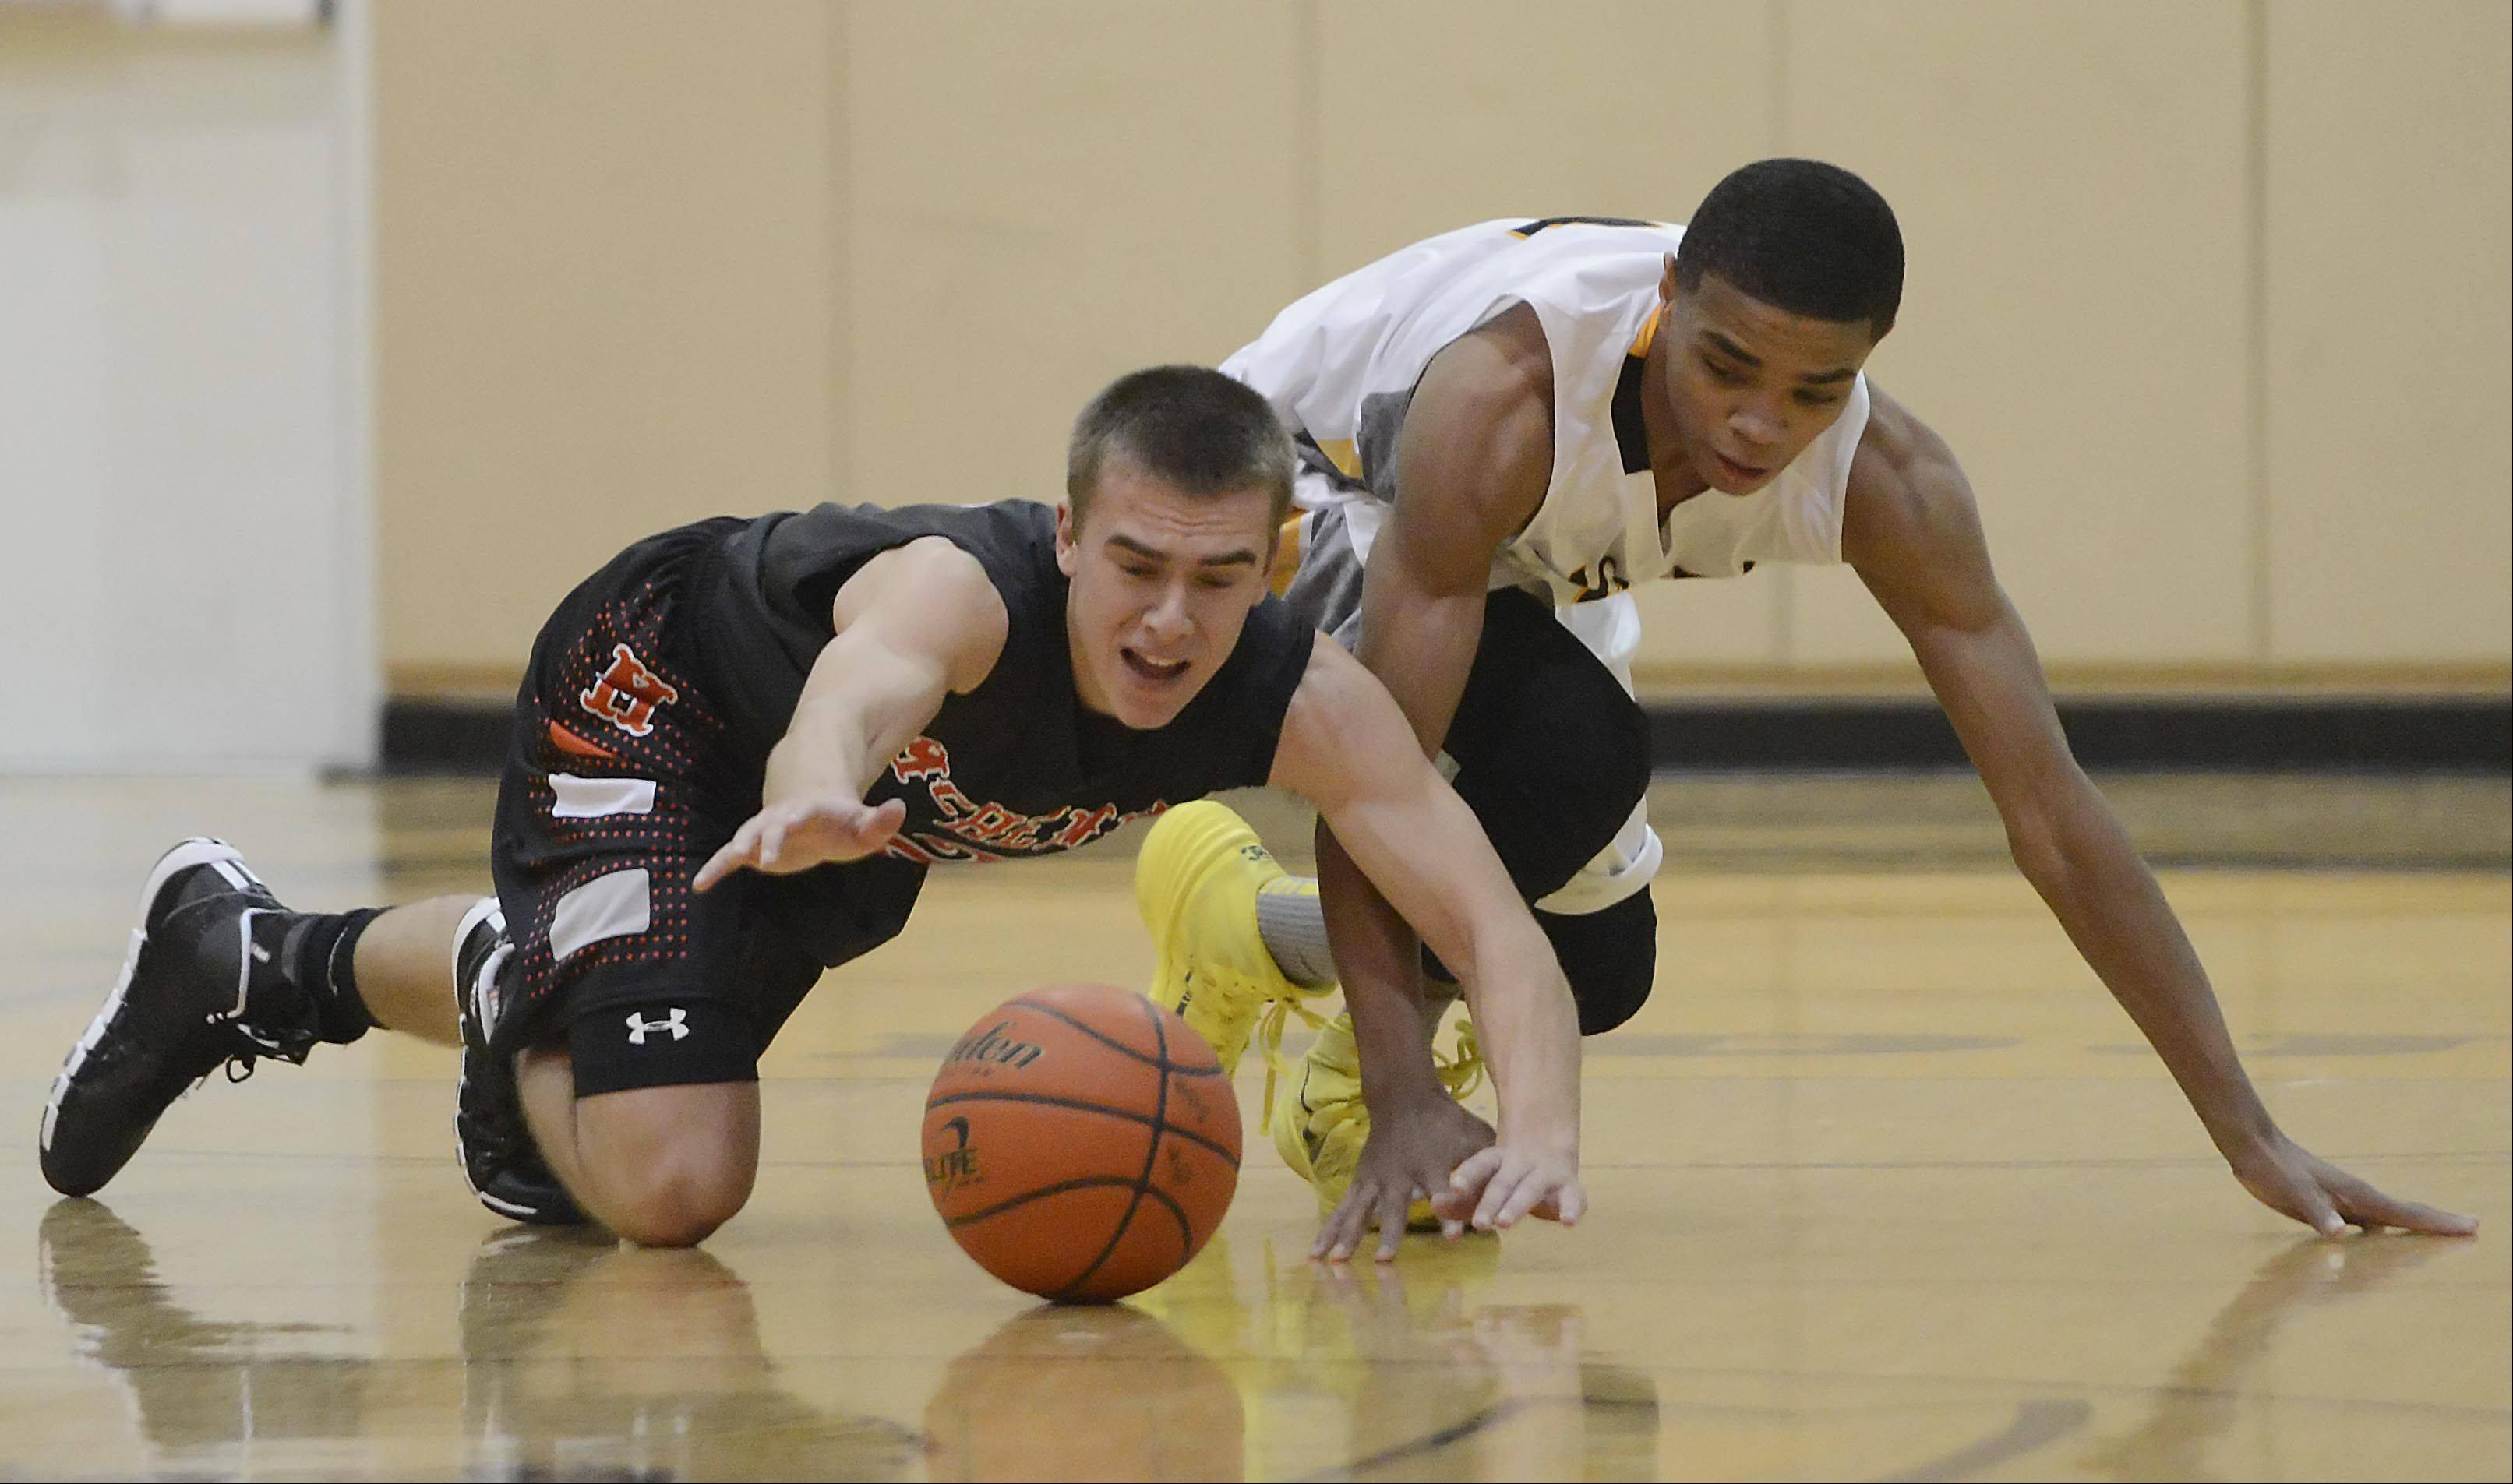 McHenry�s Cody Freund and Jacobs� Kenton Mack scramble for a loose ball.